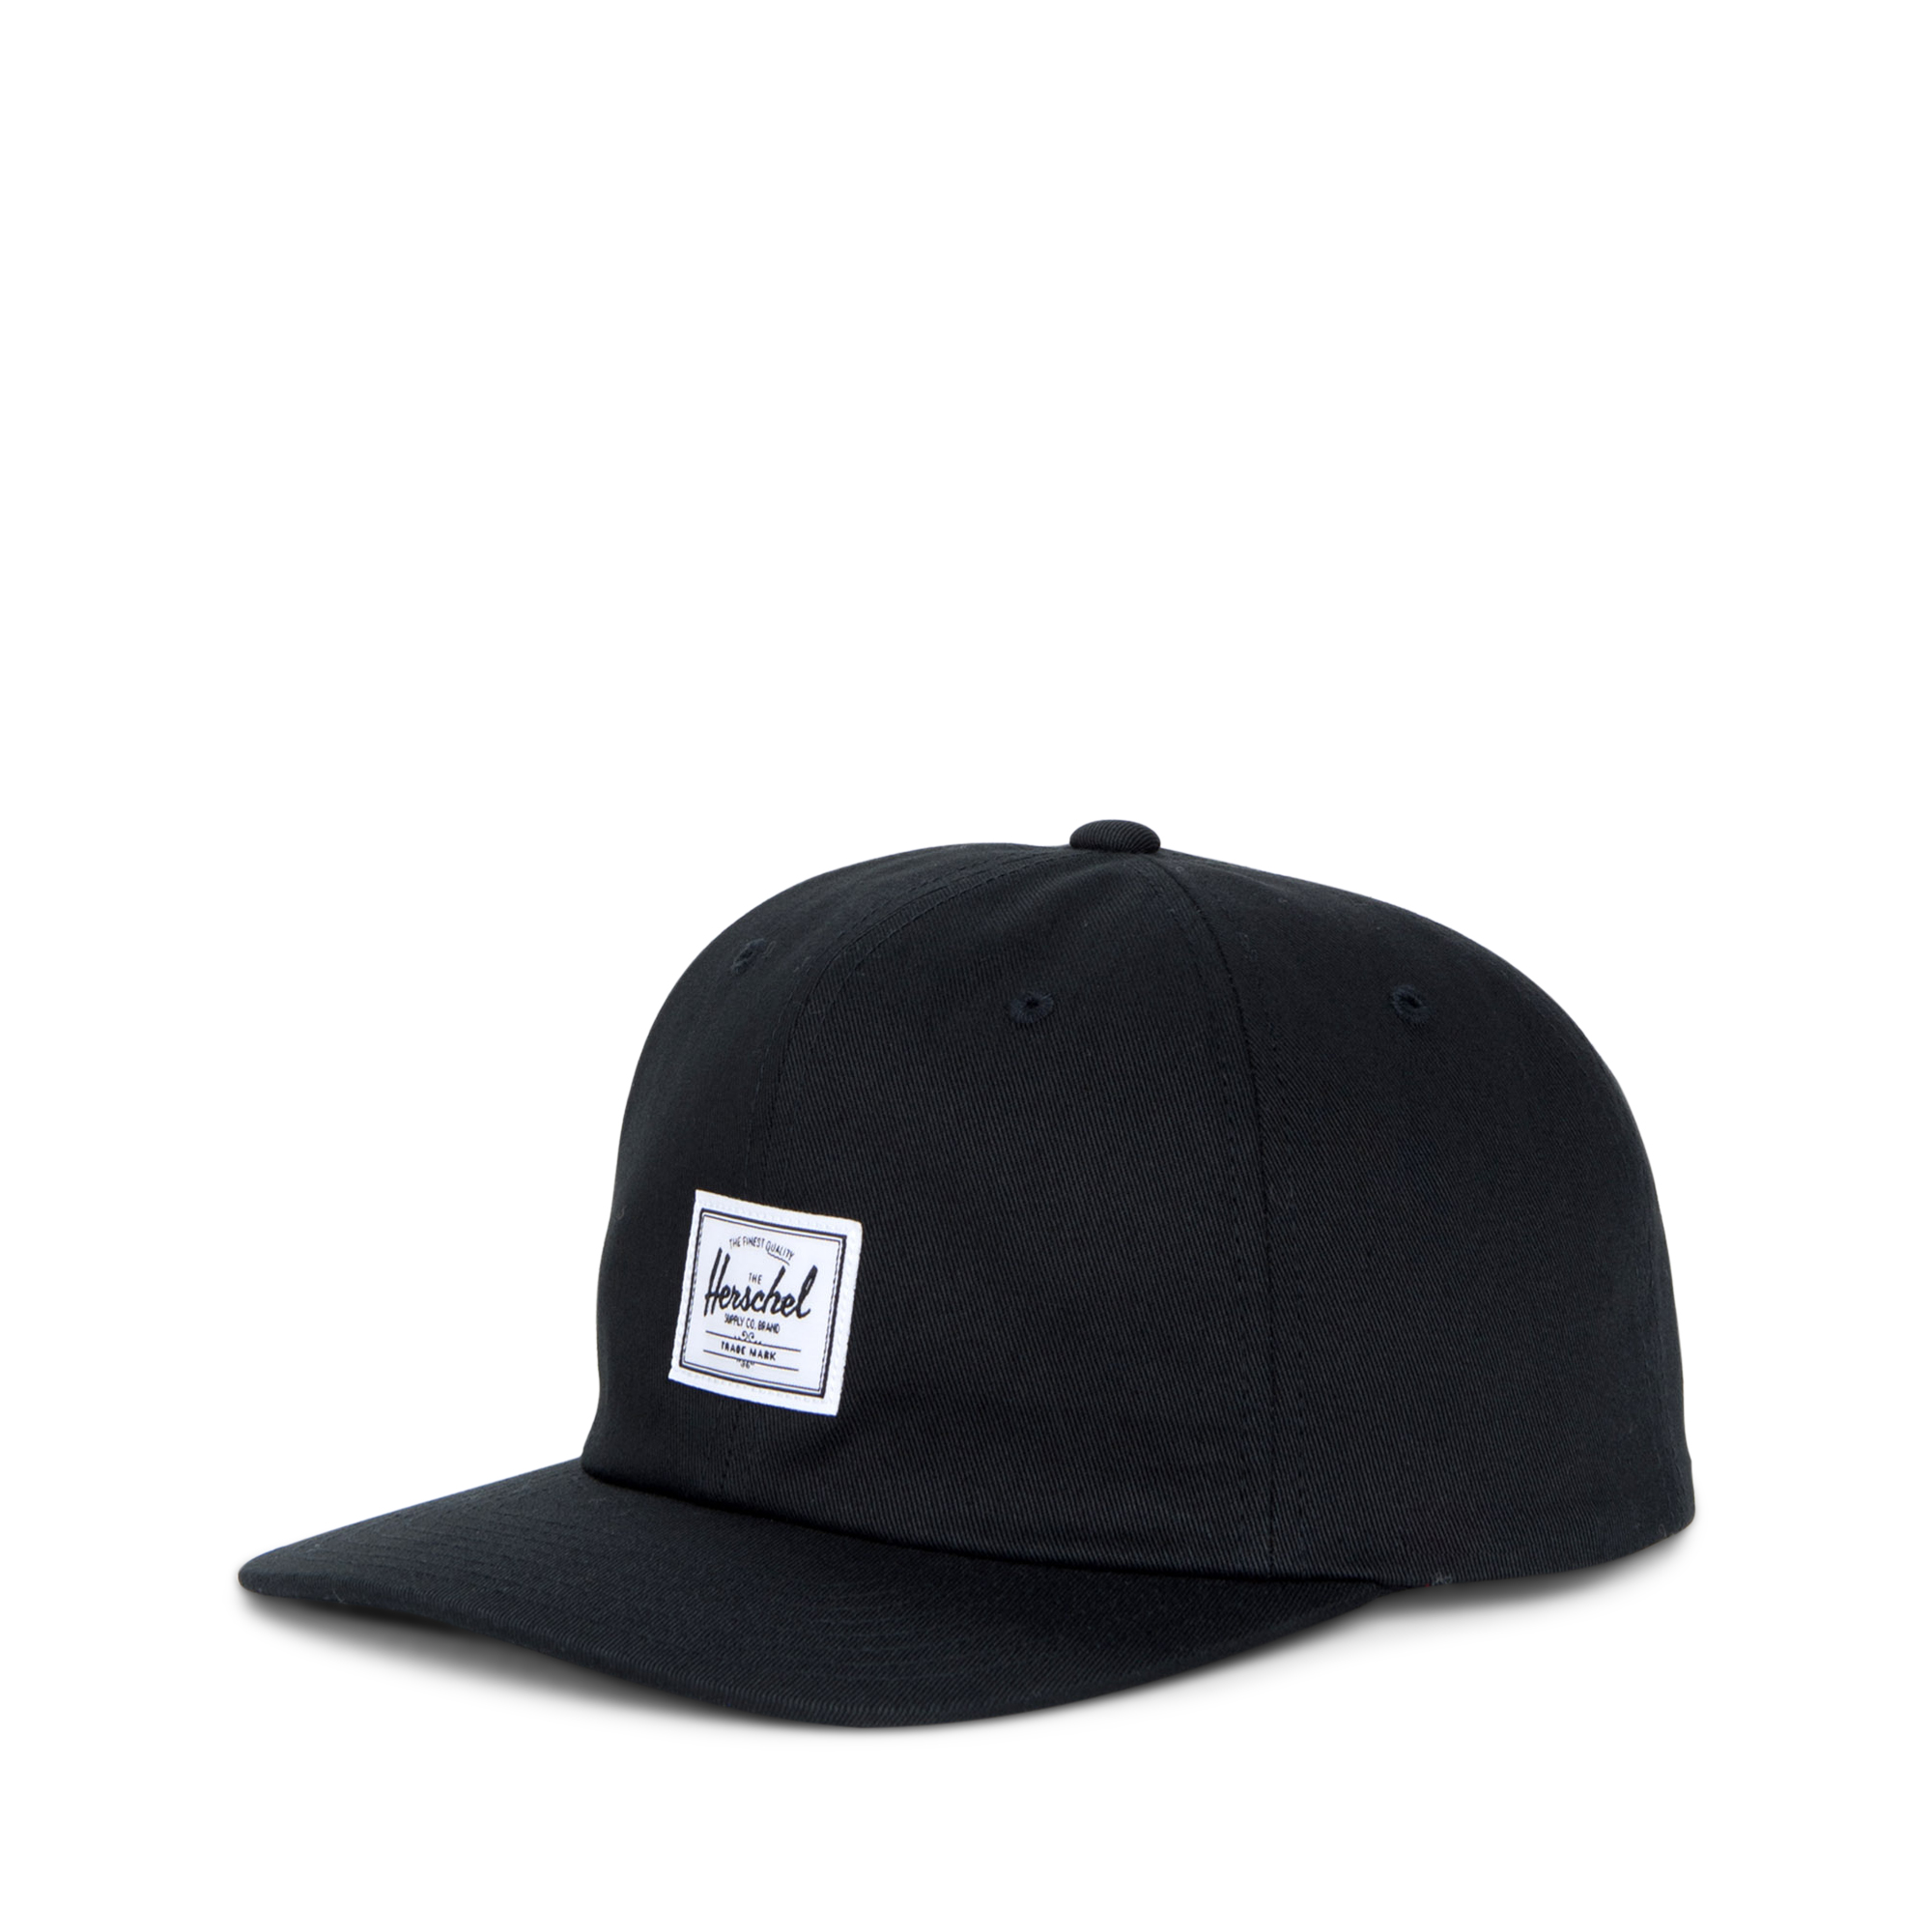 new concept ec3ca 05695 Albert Cap   Herschel Supply Company